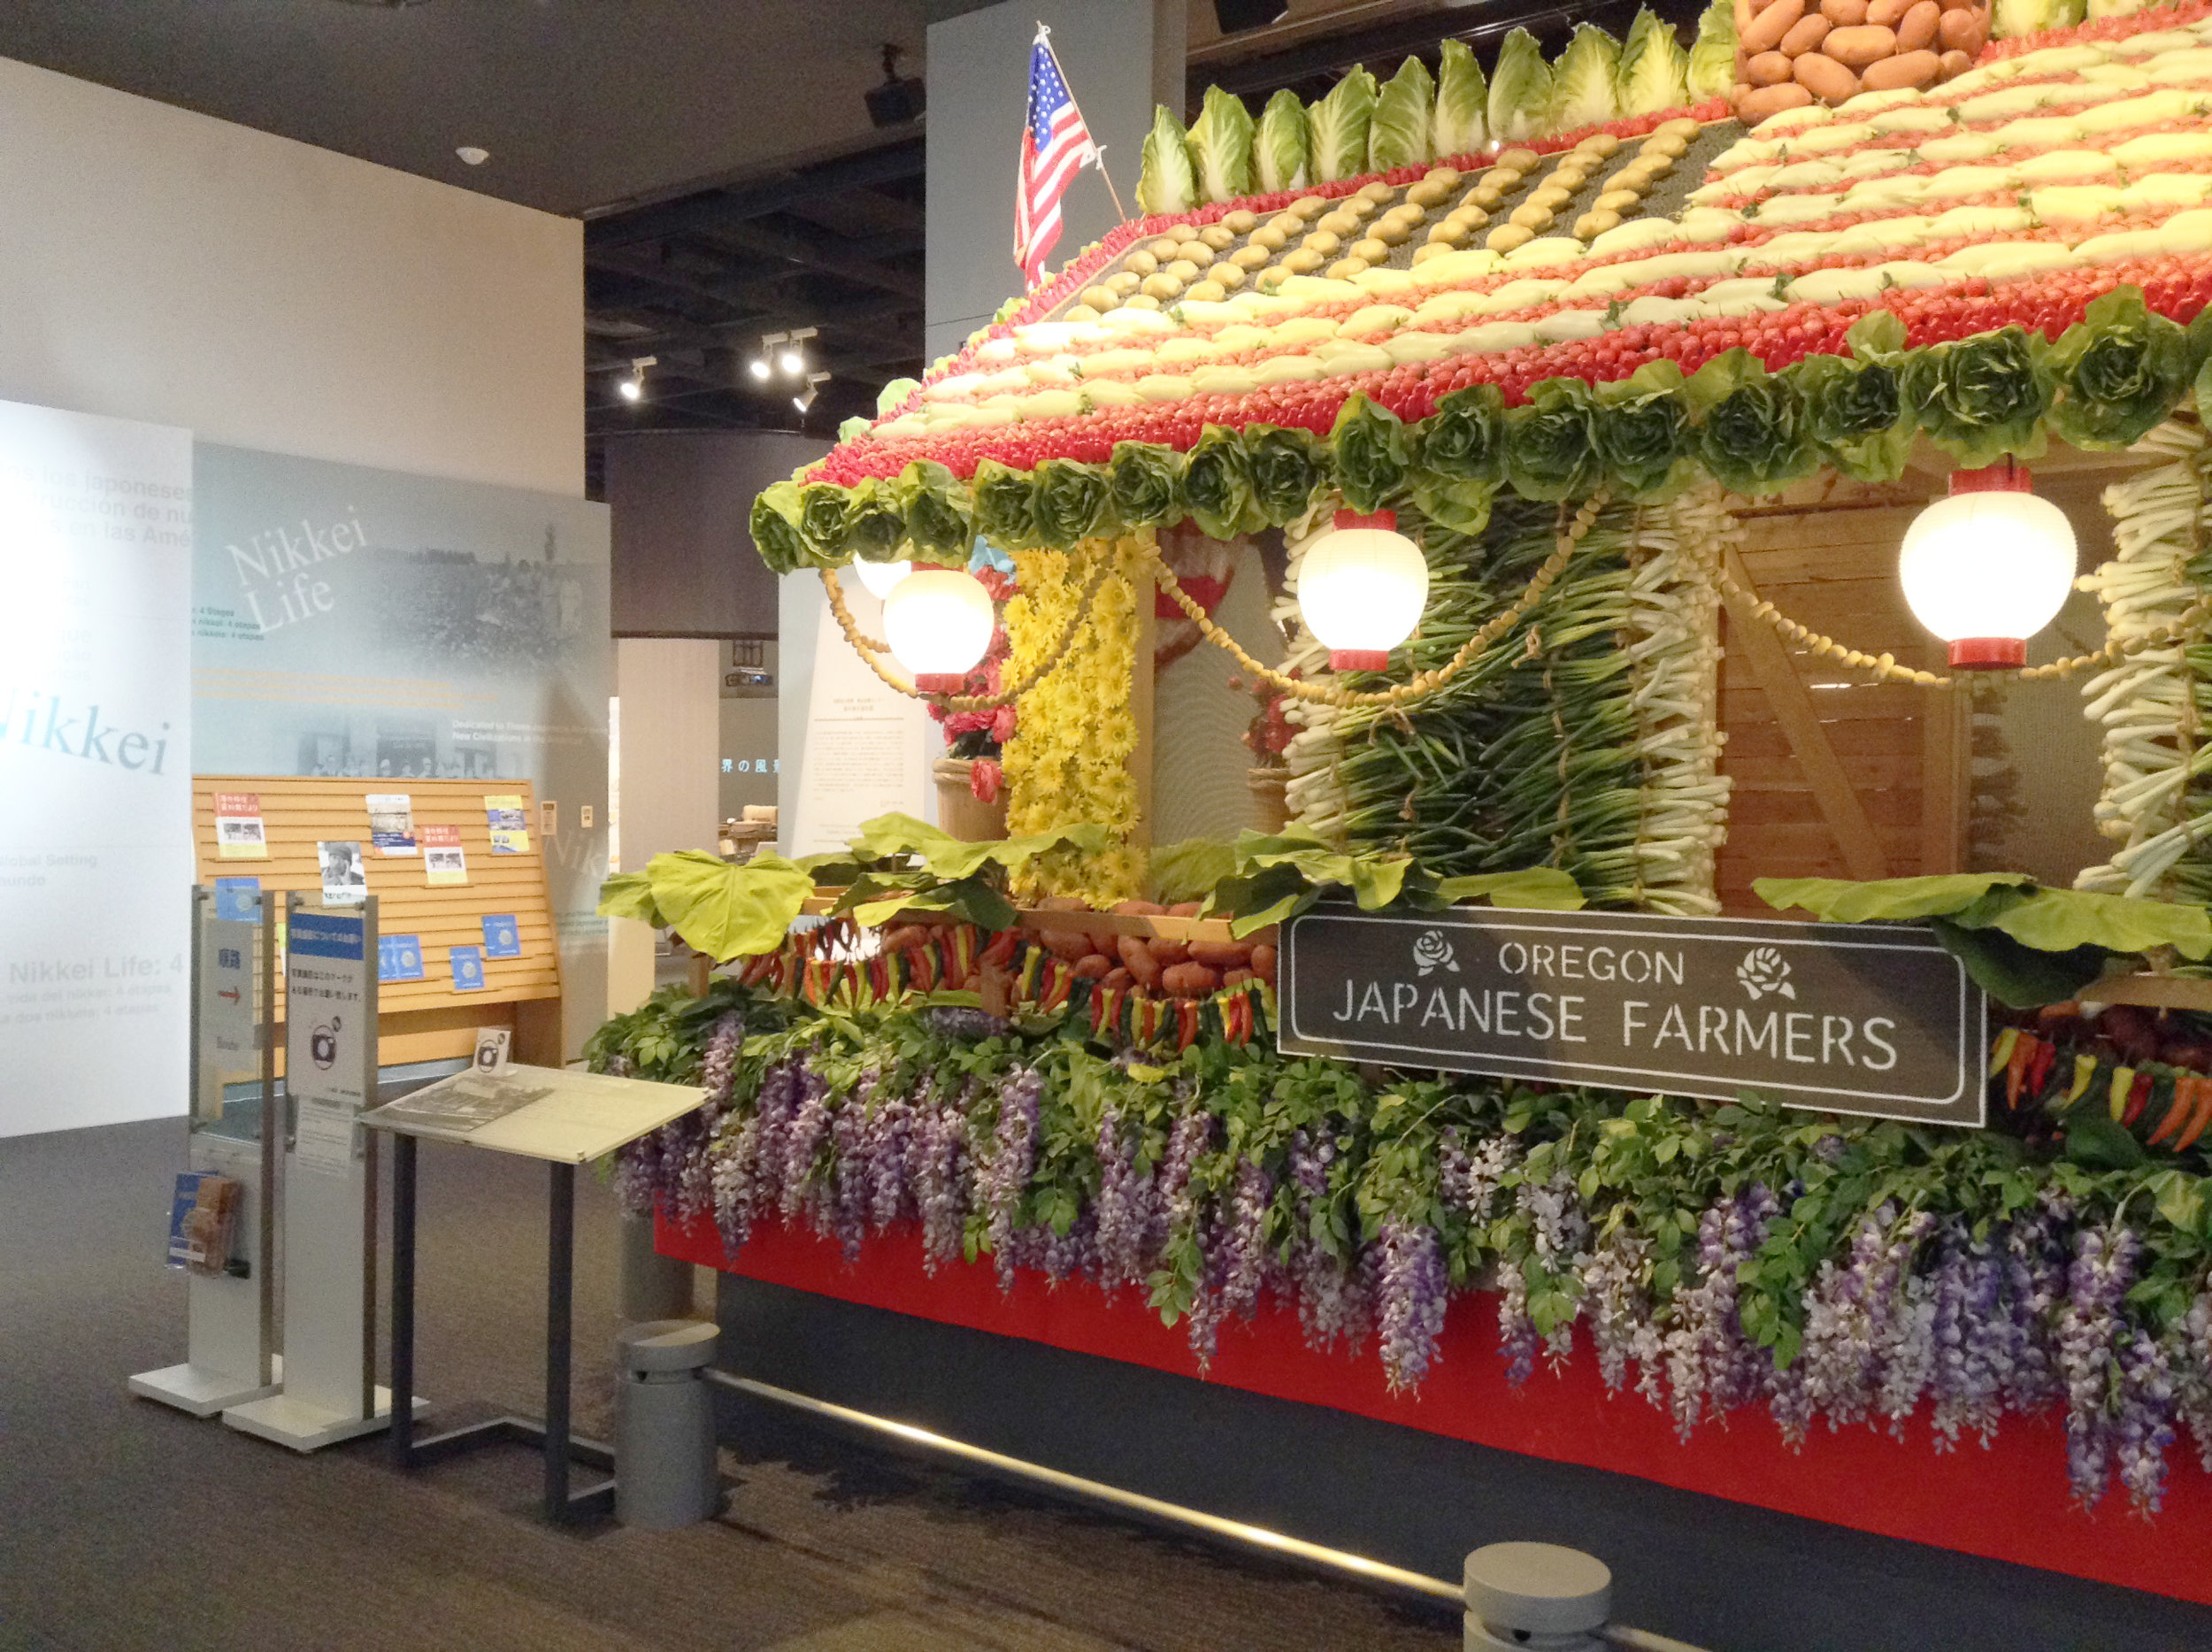 A scaled down replica of the Vegetable Float used in the Rose Parade at Japanese Overseas Migration Museum in Yokohama. It is a symbol of Nikkei communities working hard in the U.S. You can see an American flag made of crops on its roof. It is assumed that the Japan flag was on the other side.   PHOTO: ARISA NAKAMURA    海外移住資料館にあるオレゴン州のローズフェスティバルで使用された野菜山車のレプリカ。アメリカで仕事に励んだ日系人のシンボルである。山車の屋根には野菜でアメリカ国旗が描かれており、反対側には日本国旗があったと考えられている。